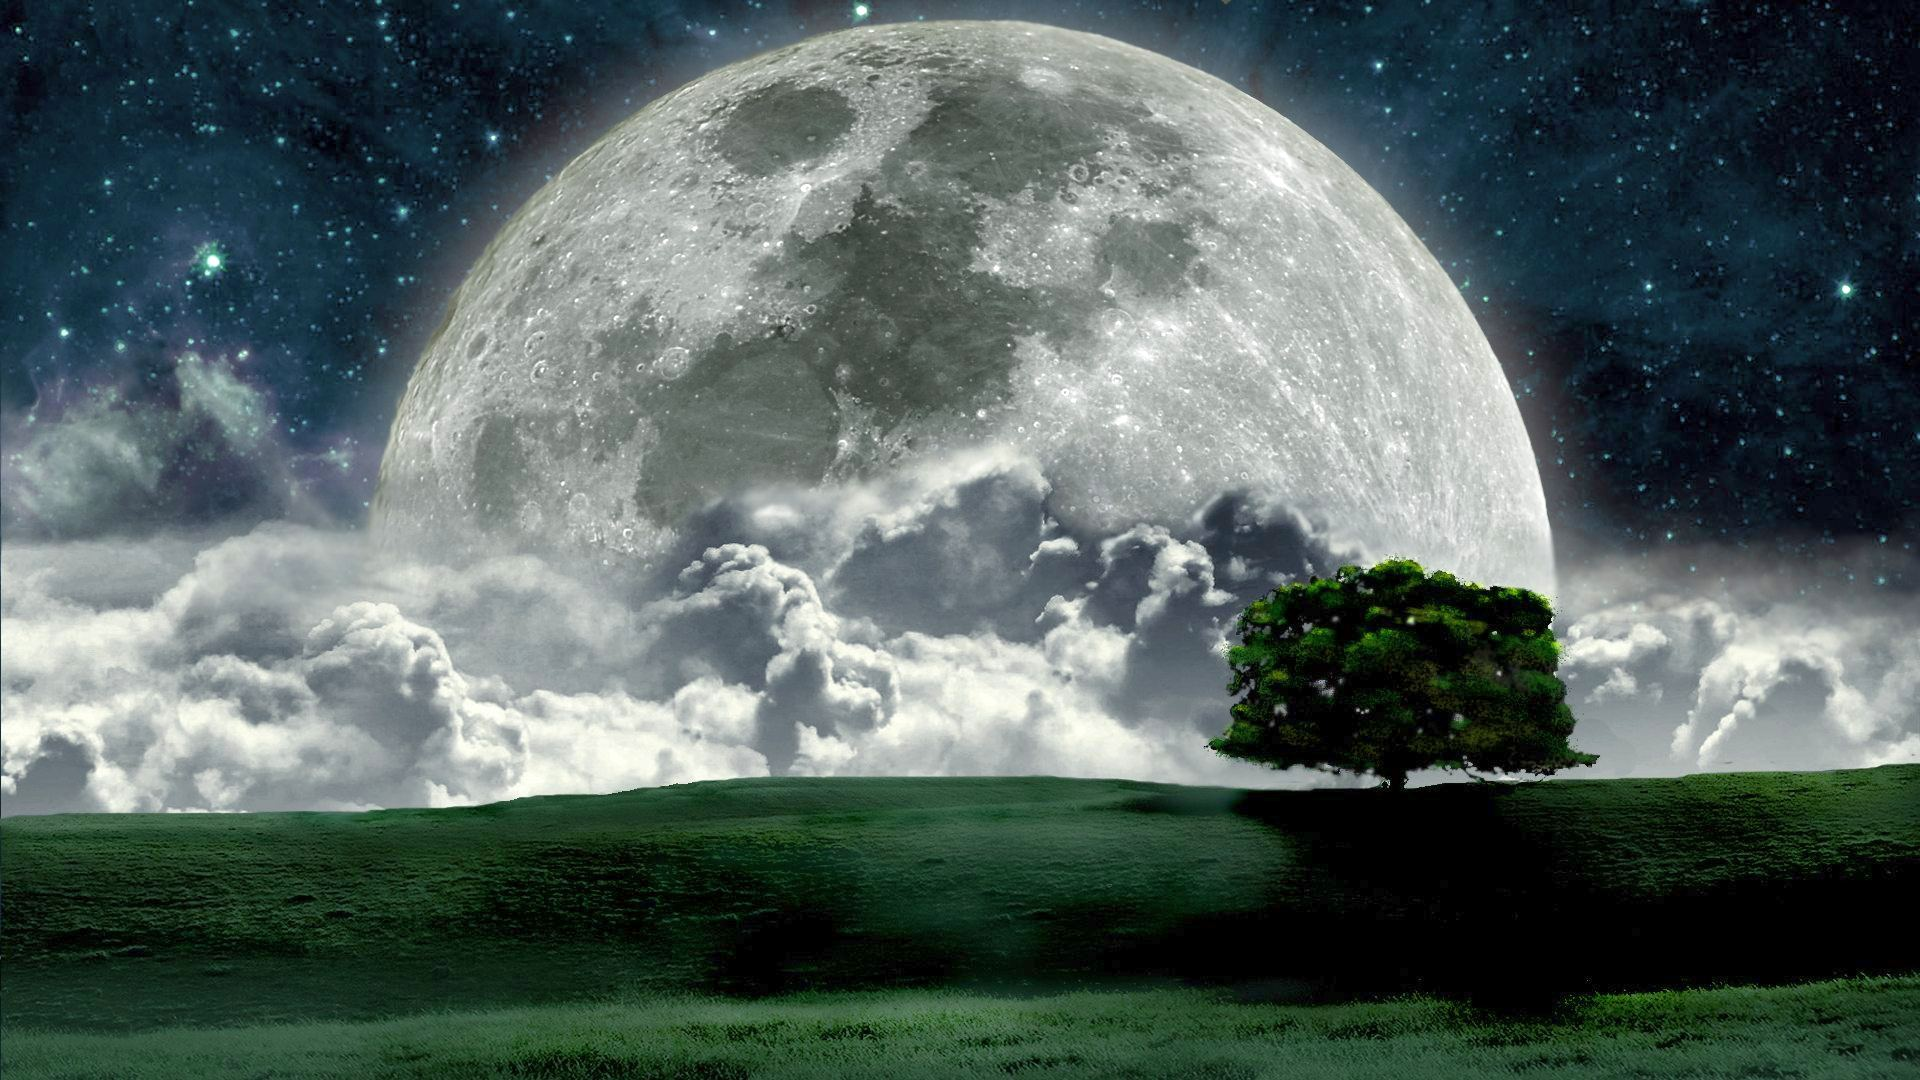 beautiful night moon photos hd wallpaper free full moon